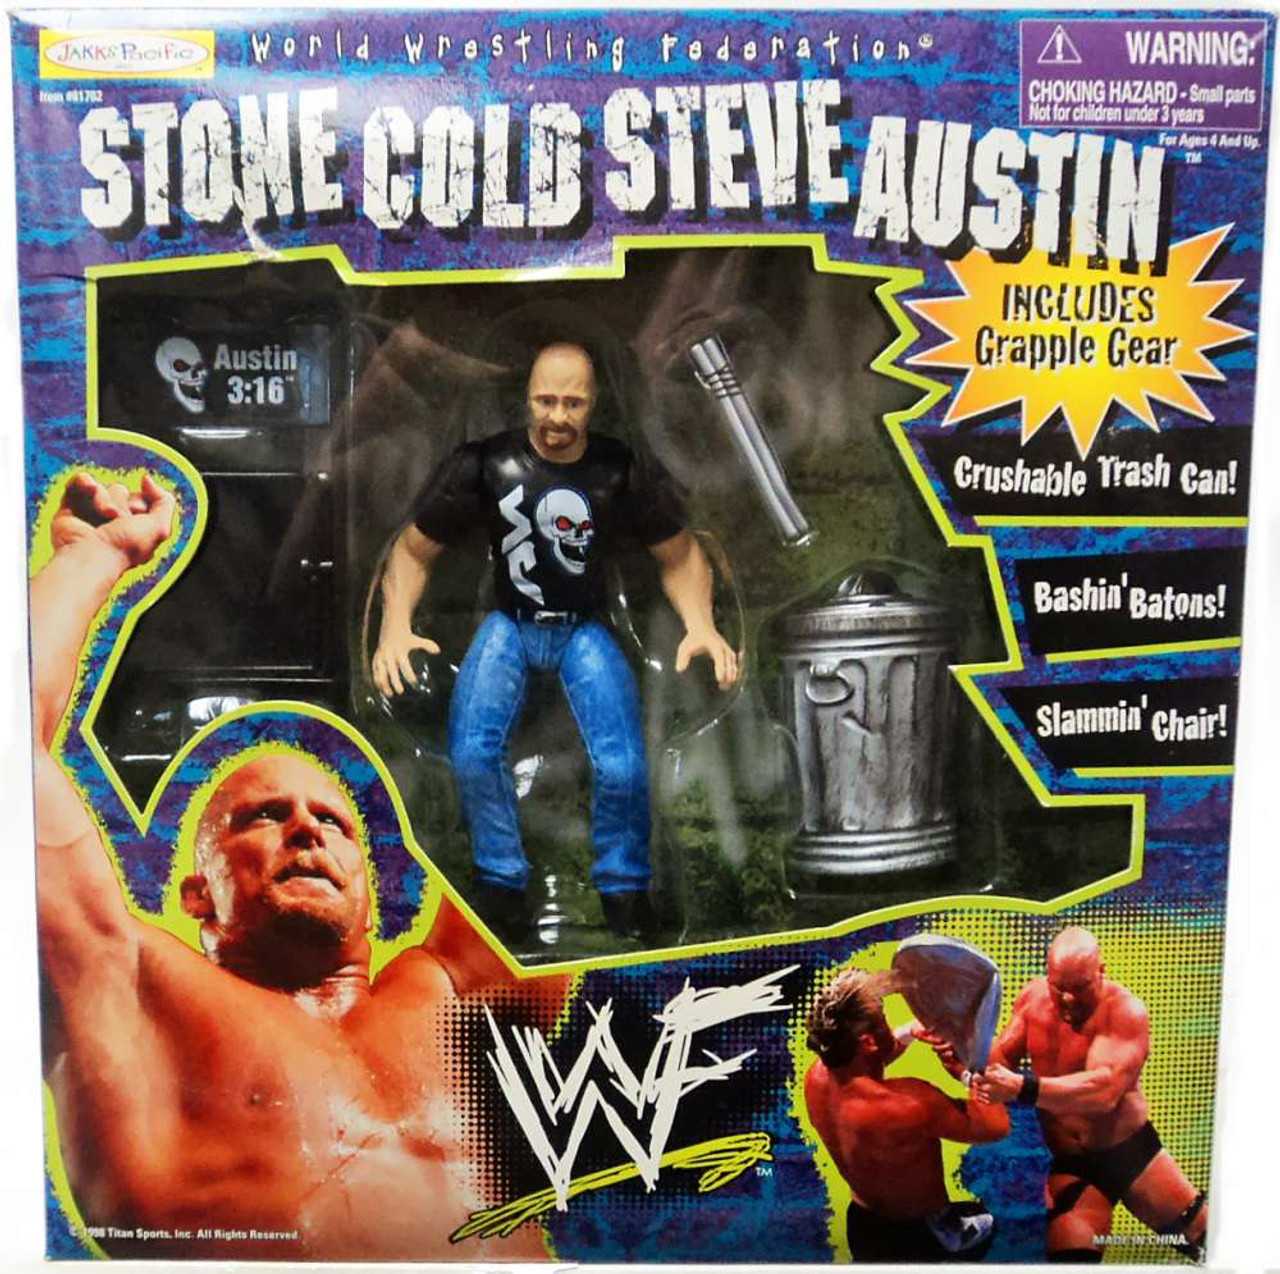 Wrestling Bettwäsche Spielzeug Wwe Wrestling Police Batton Action Figure Accessory Black Loose Triadecont.com.br